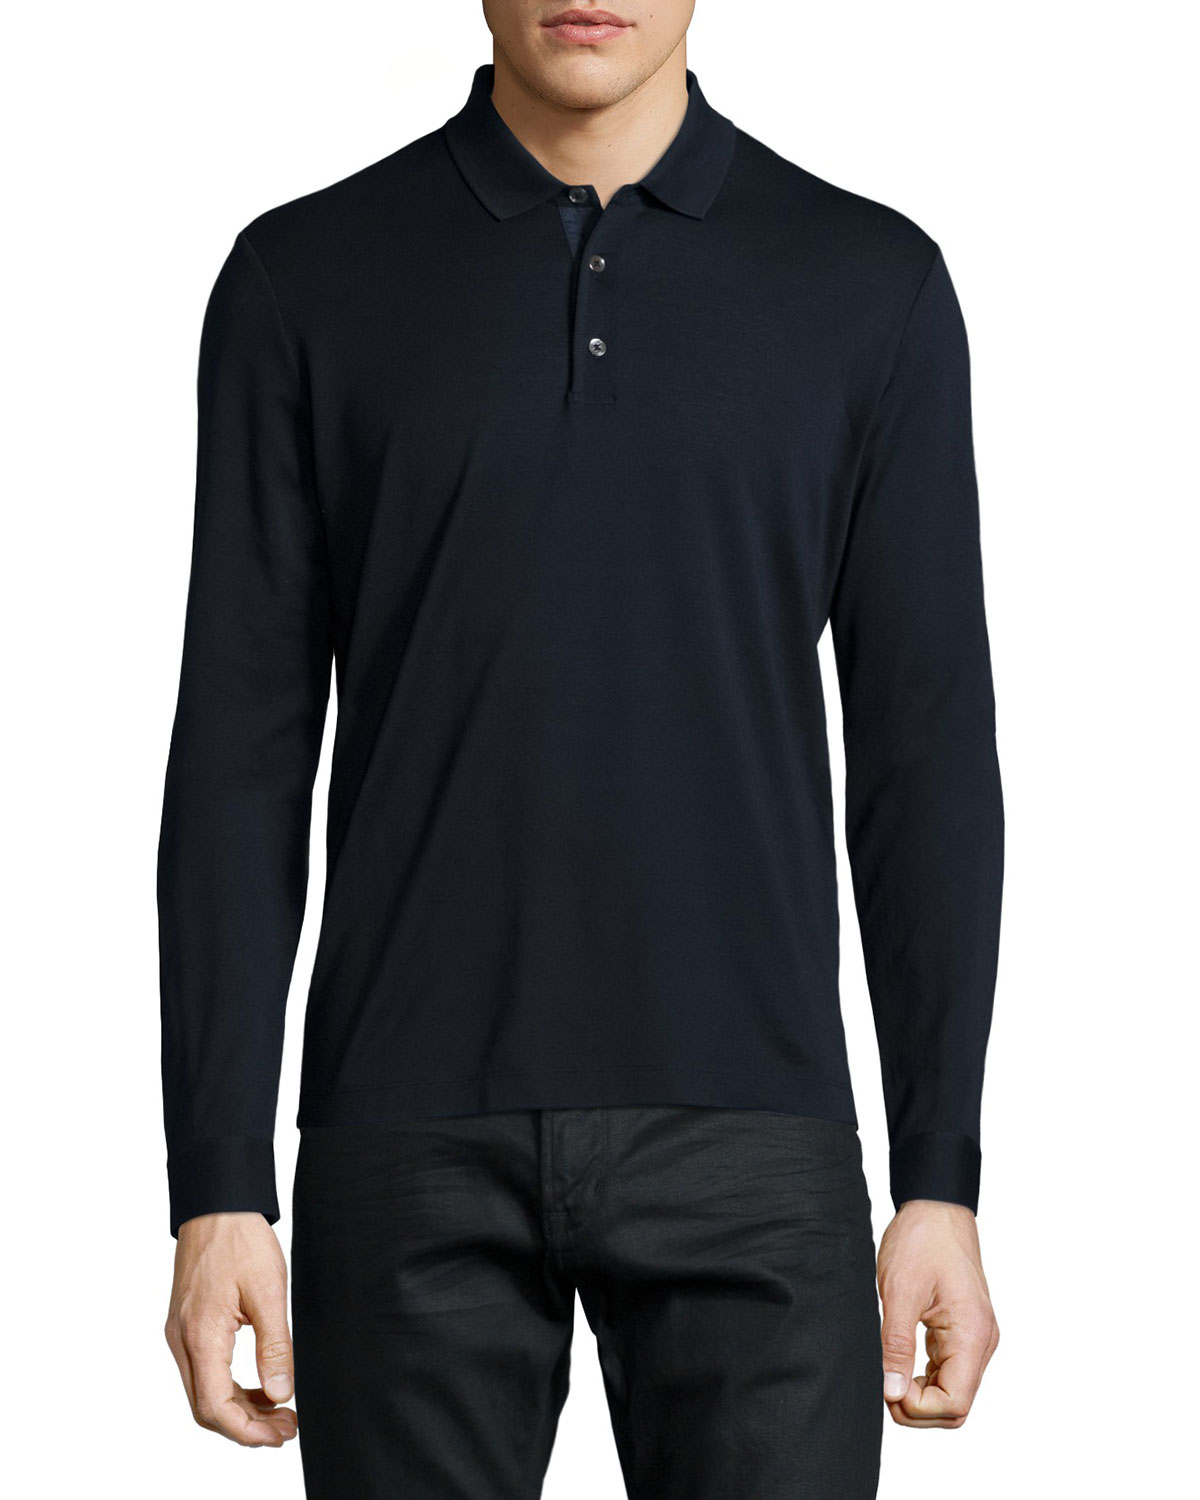 Lyst - Theory Long-sleeve Pique Polo Shirt in Blue for Men